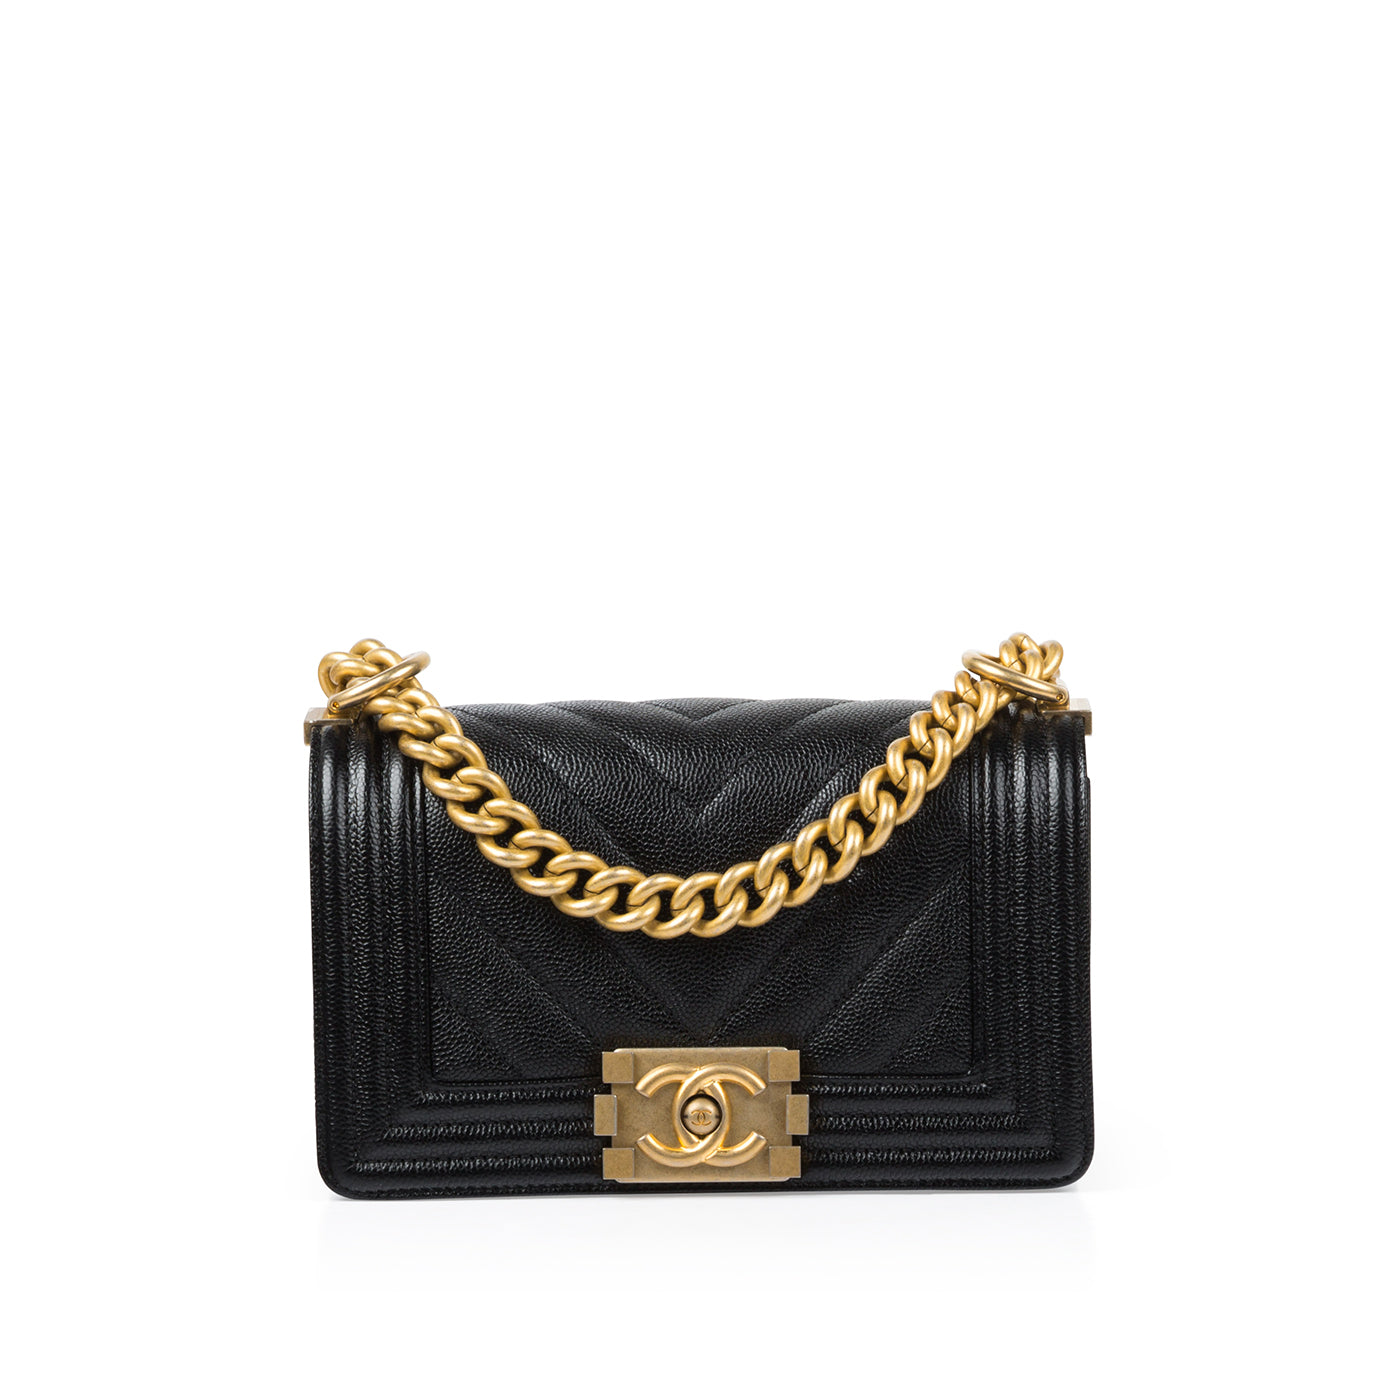 2c0f96384e72 Chanel - Small Boy Bag - Black Caviar Leather - Gold Hardware - New ...